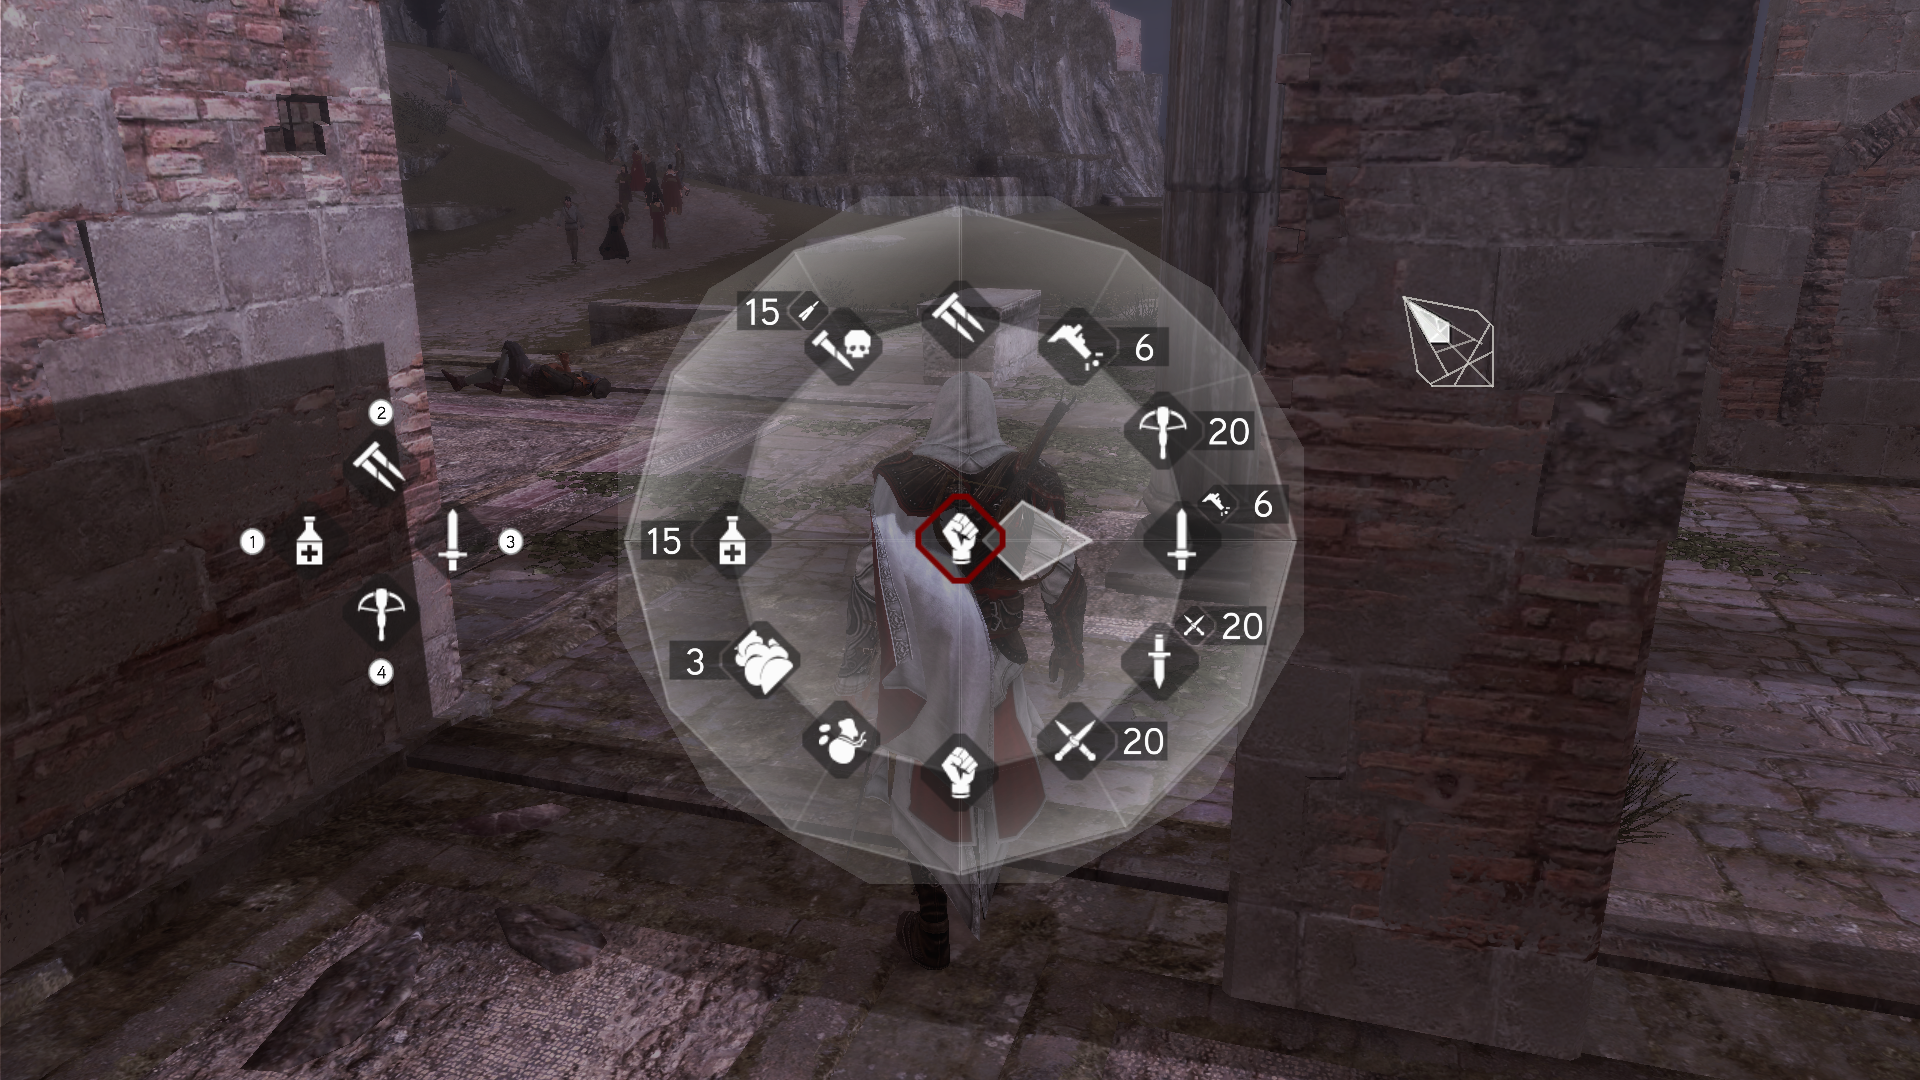 Request] Weapon Wheel in Skyrim - skyrimmods